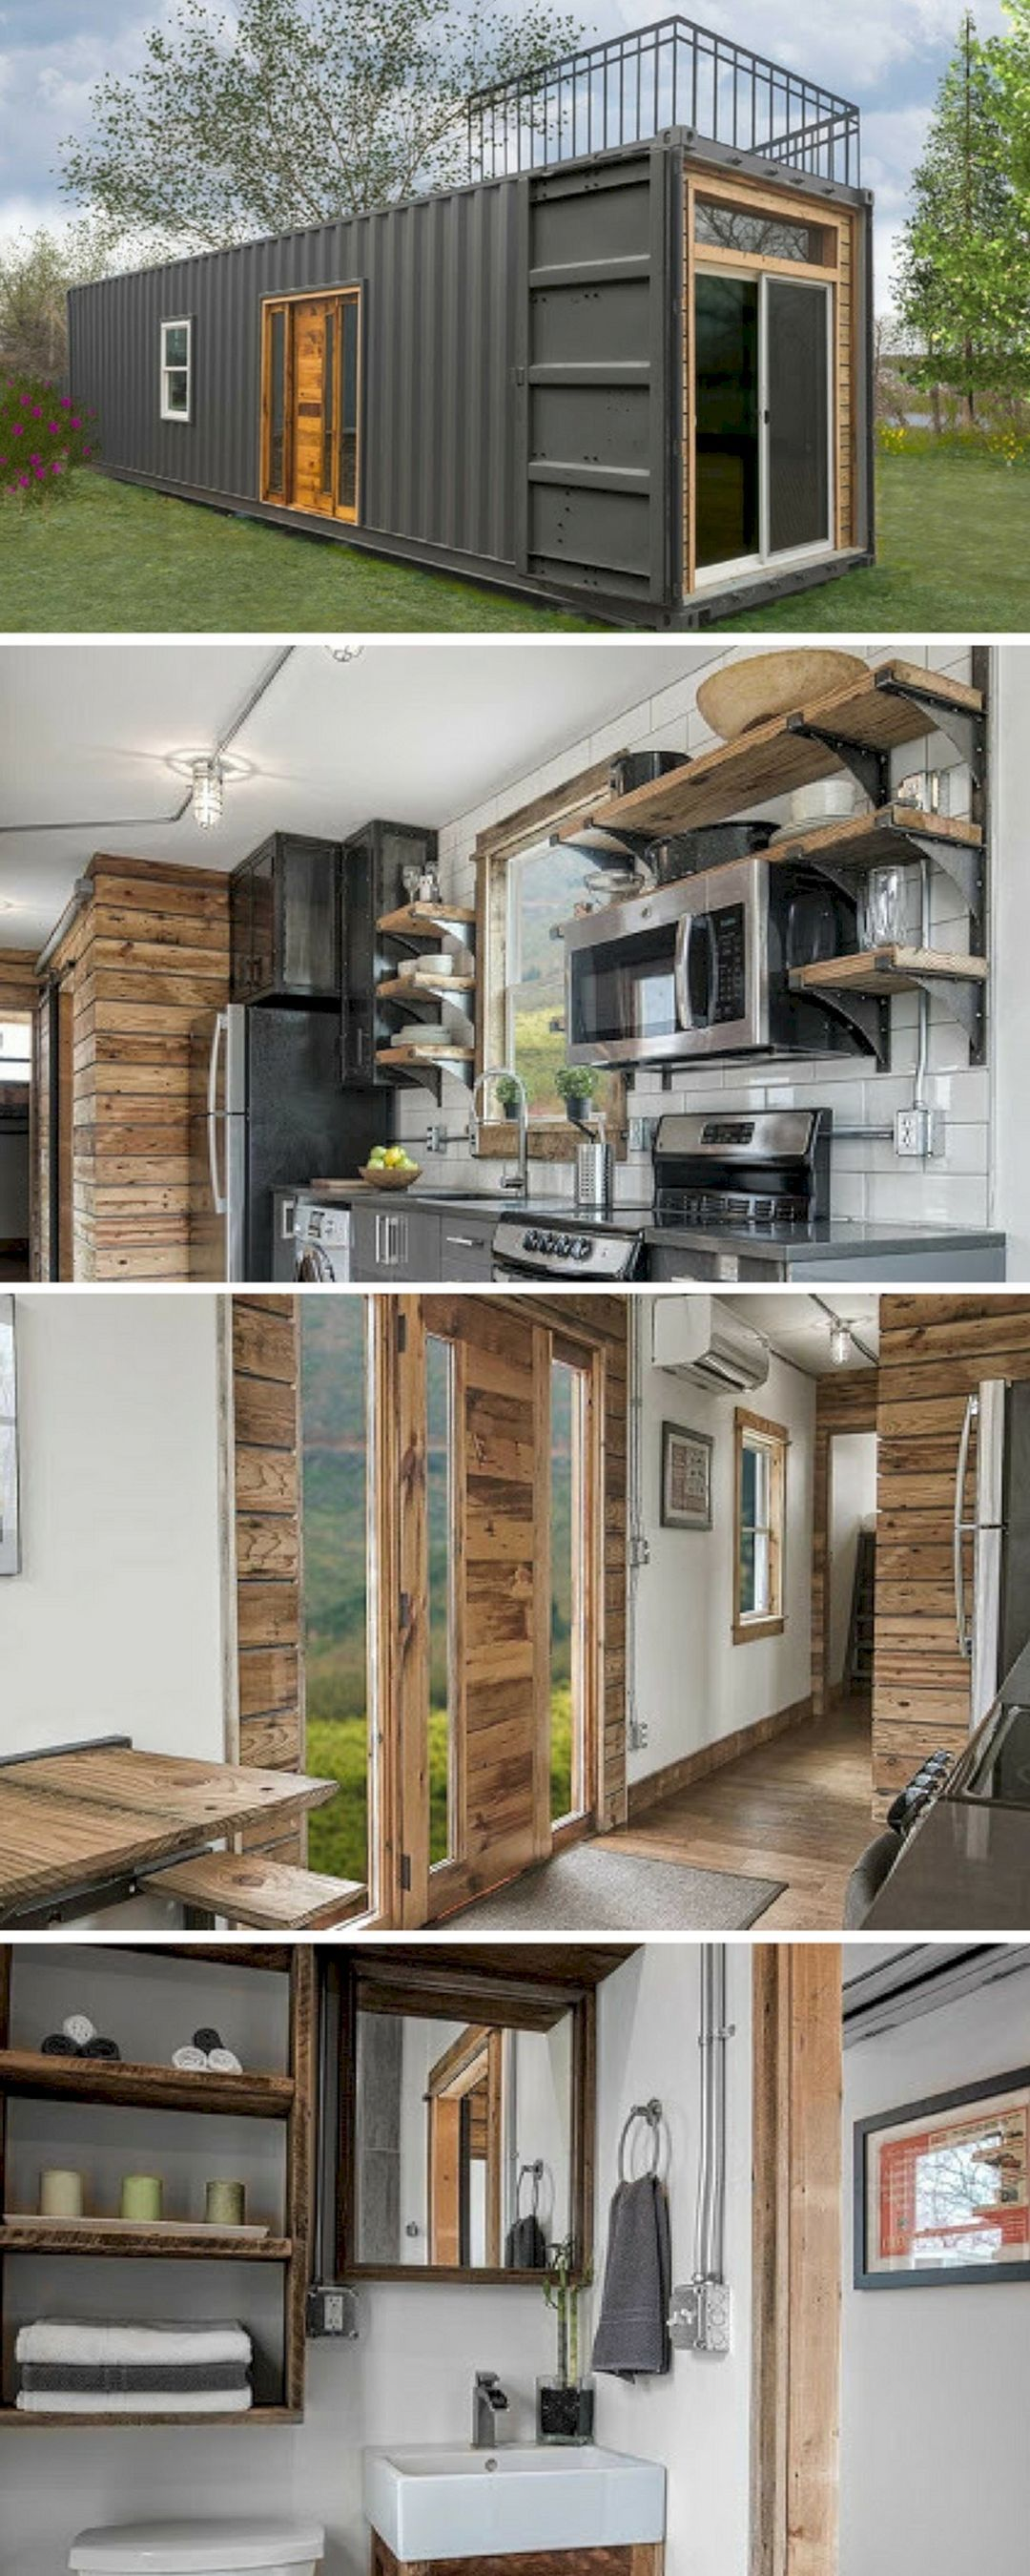 The Best Modern and Gorgeous Container Houses Design Ideas No 41 #containerhouse